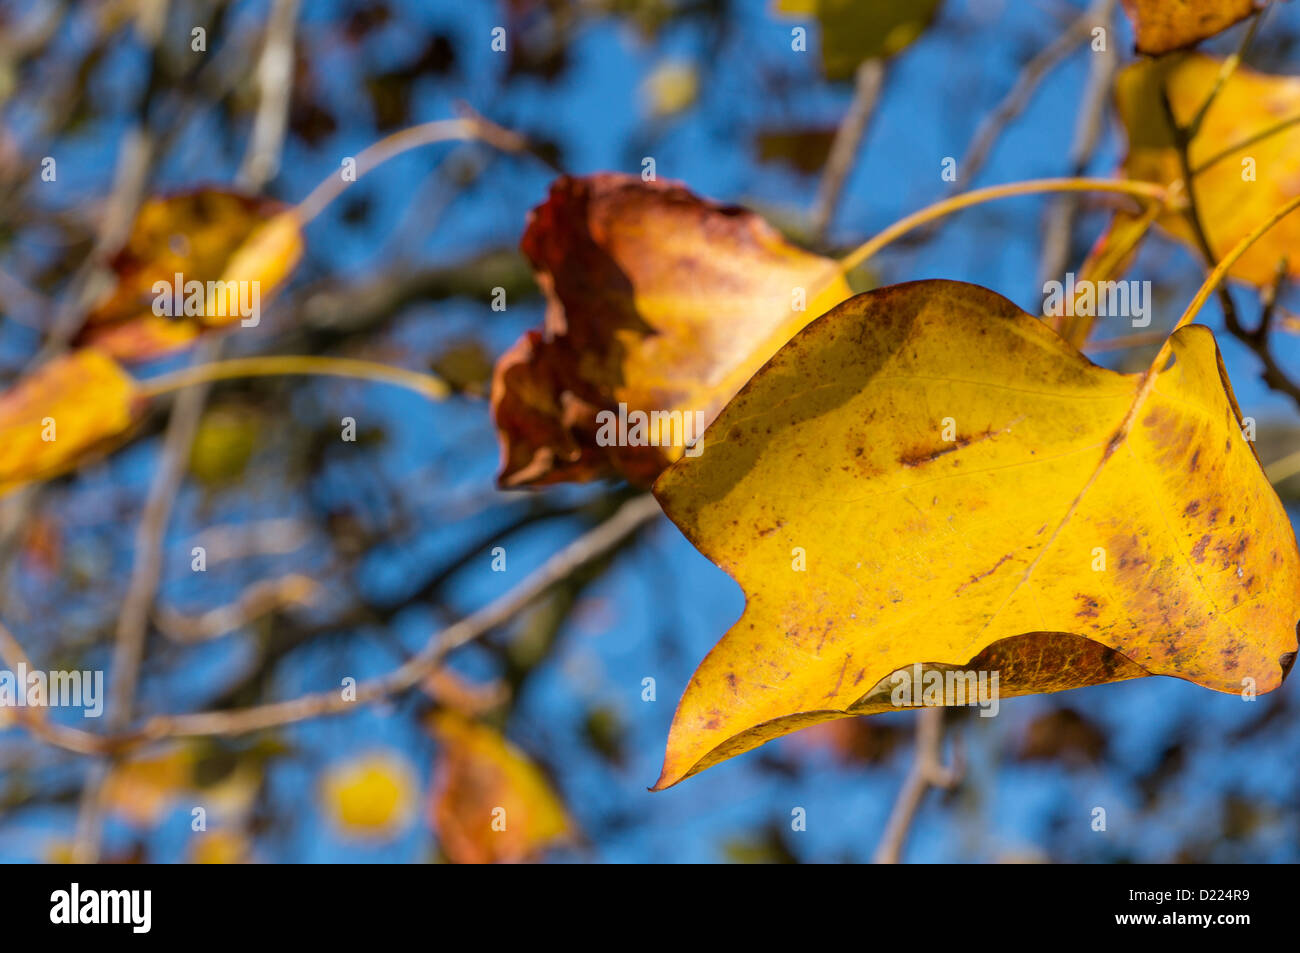 Glorious Autumn leaves against a blue sky - image taken with a shallow depth of field - Stock Image